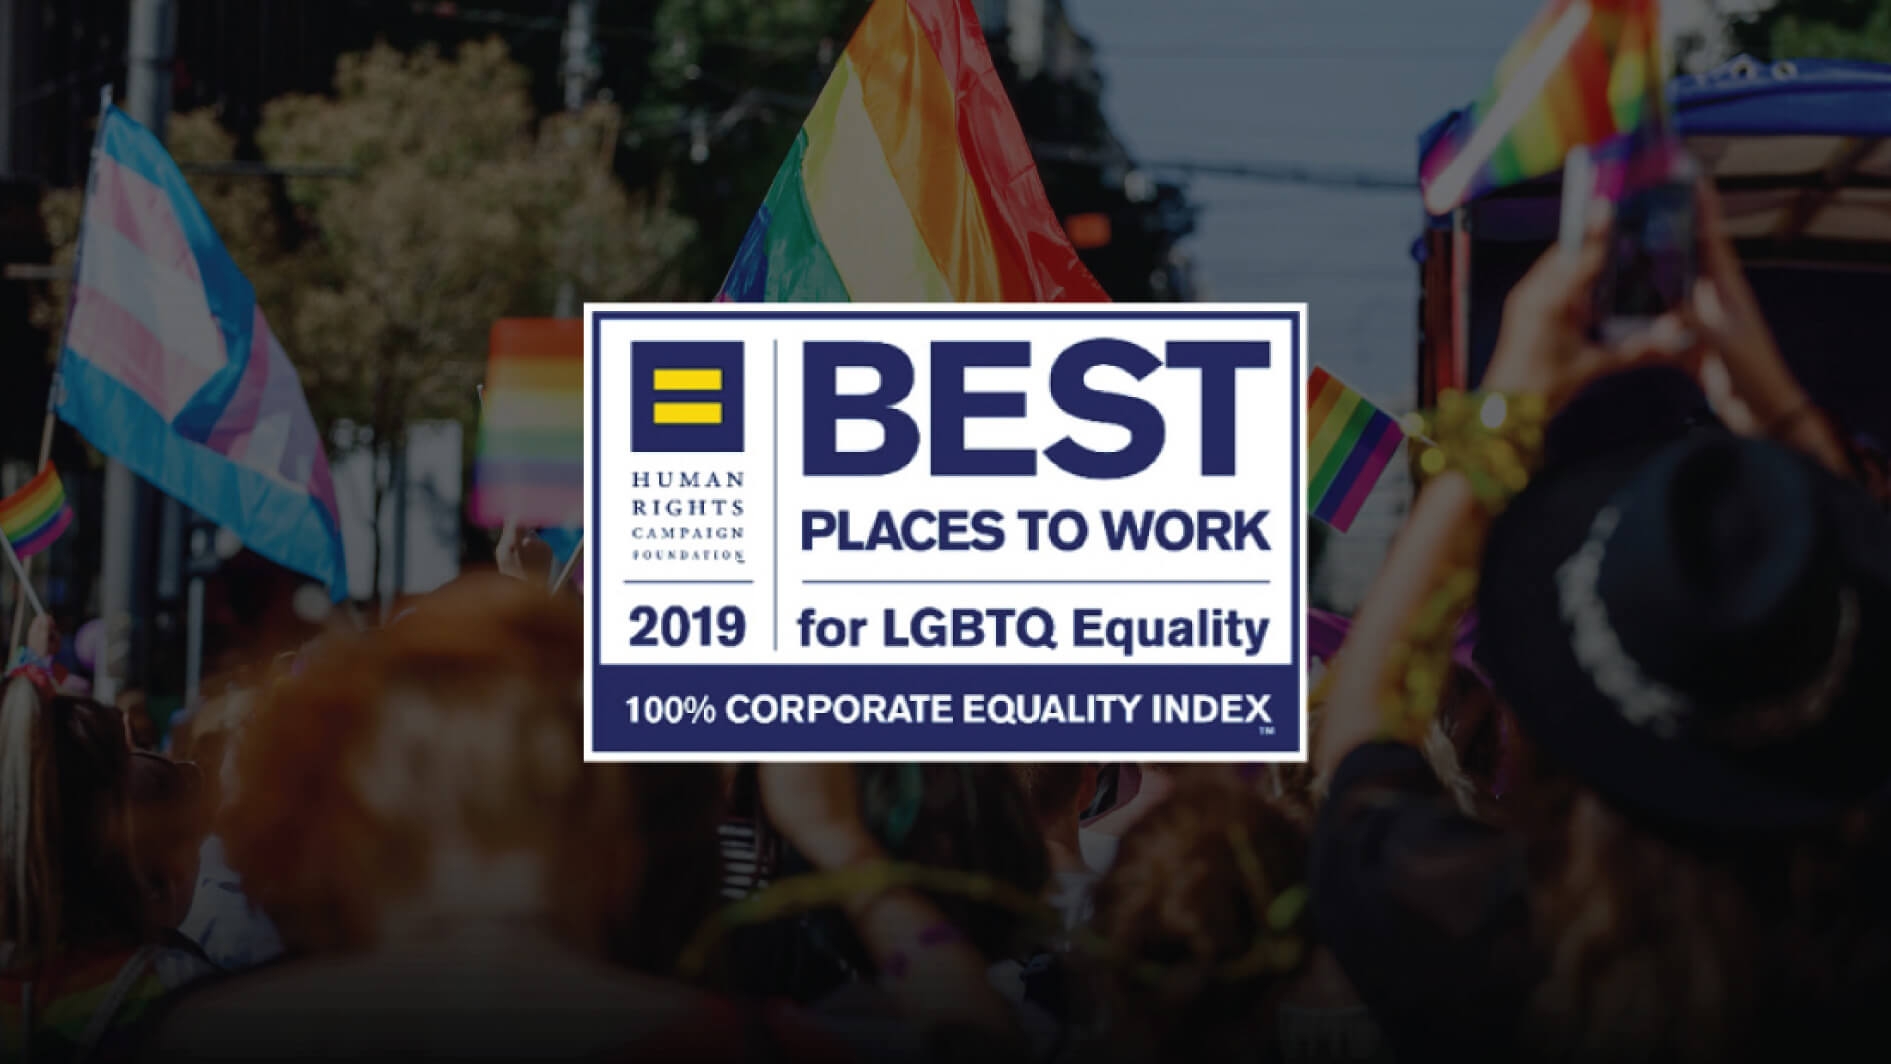 Stanley Black & Decker Earns Top Marks in 2019 Corporate Equality Index